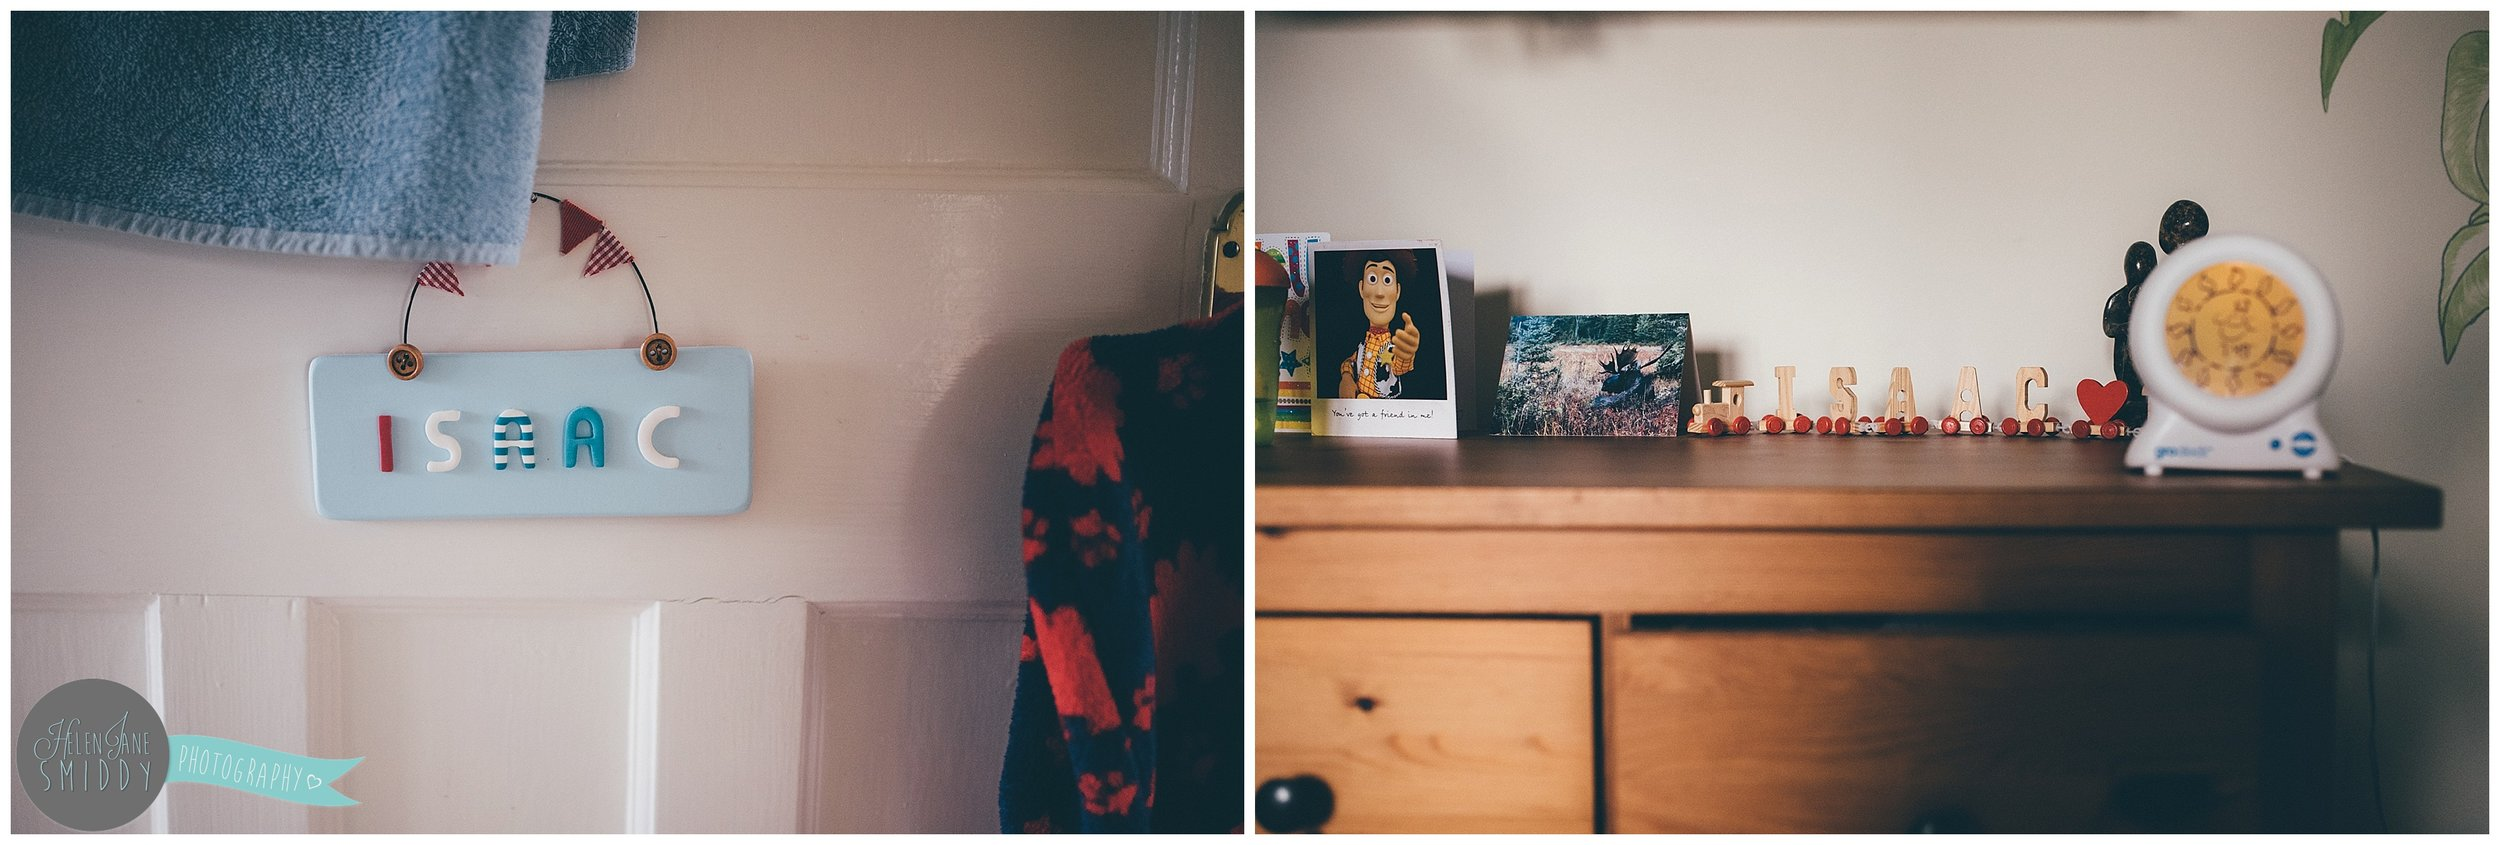 Details of Isaac's bedroom during their Day In The Life photoshoot.